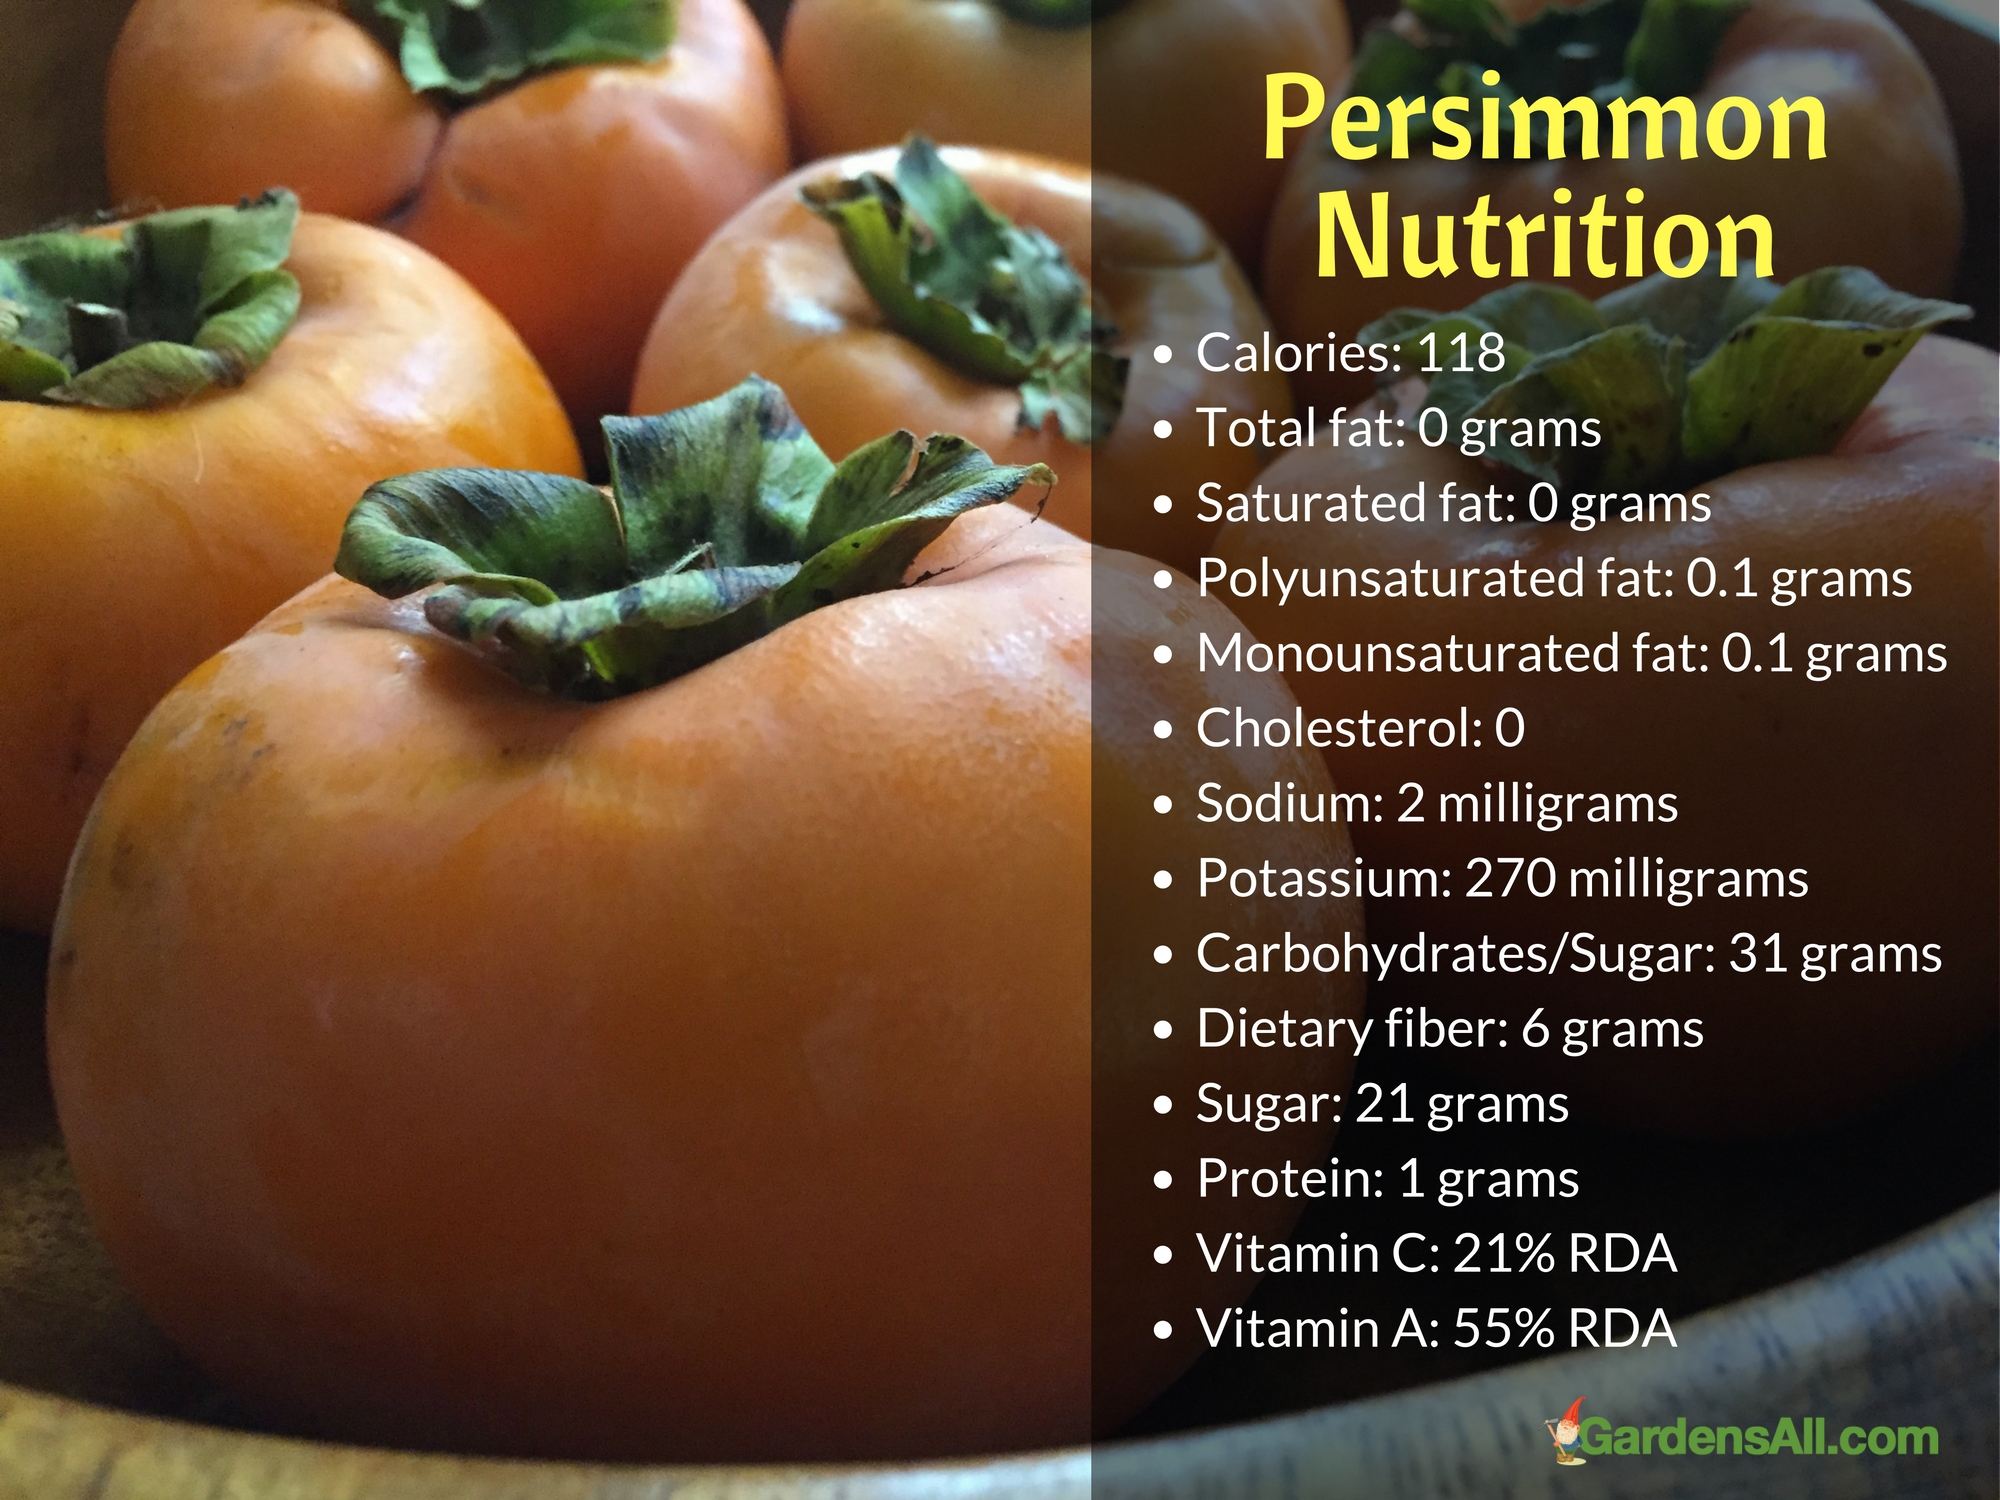 Persimmons have a multitude of beneficial properties that assist in keeping the body healthy besides being tasty.